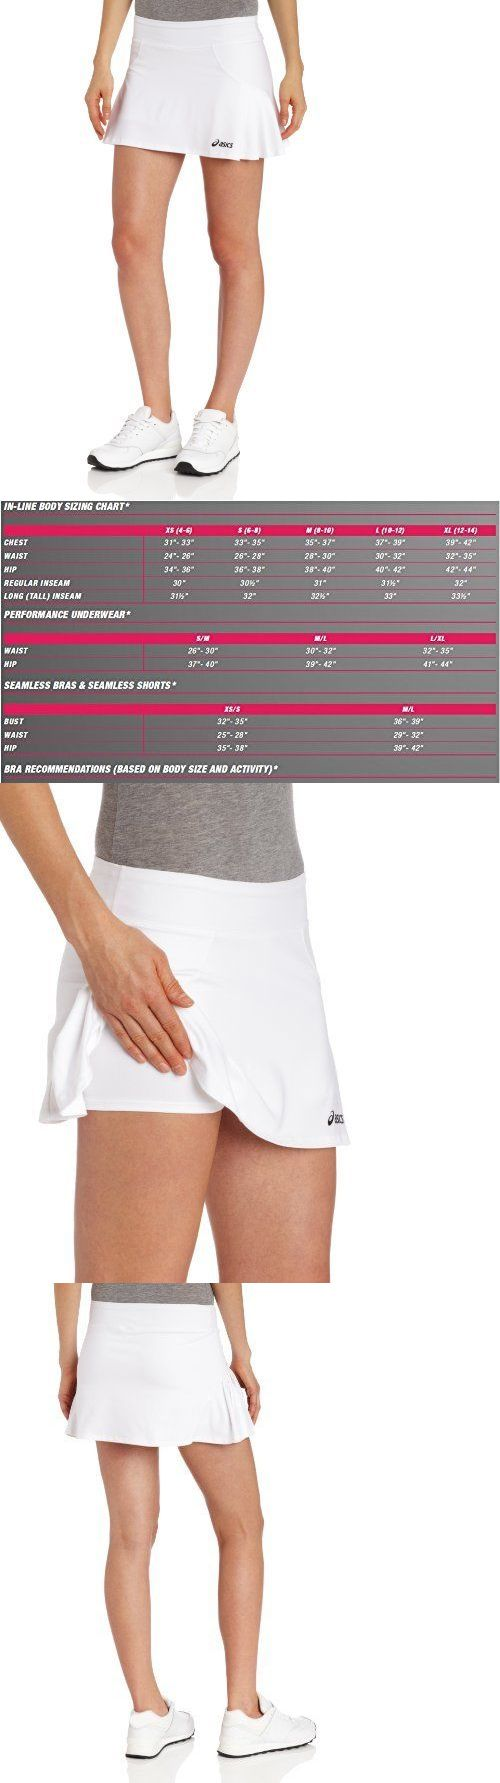 Other Racquet Sport Clothing 70903: Asics Women S Love Skort Small White Womens Tennis Apparel, New -> BUY IT NOW ONLY: $136.4 on eBay!